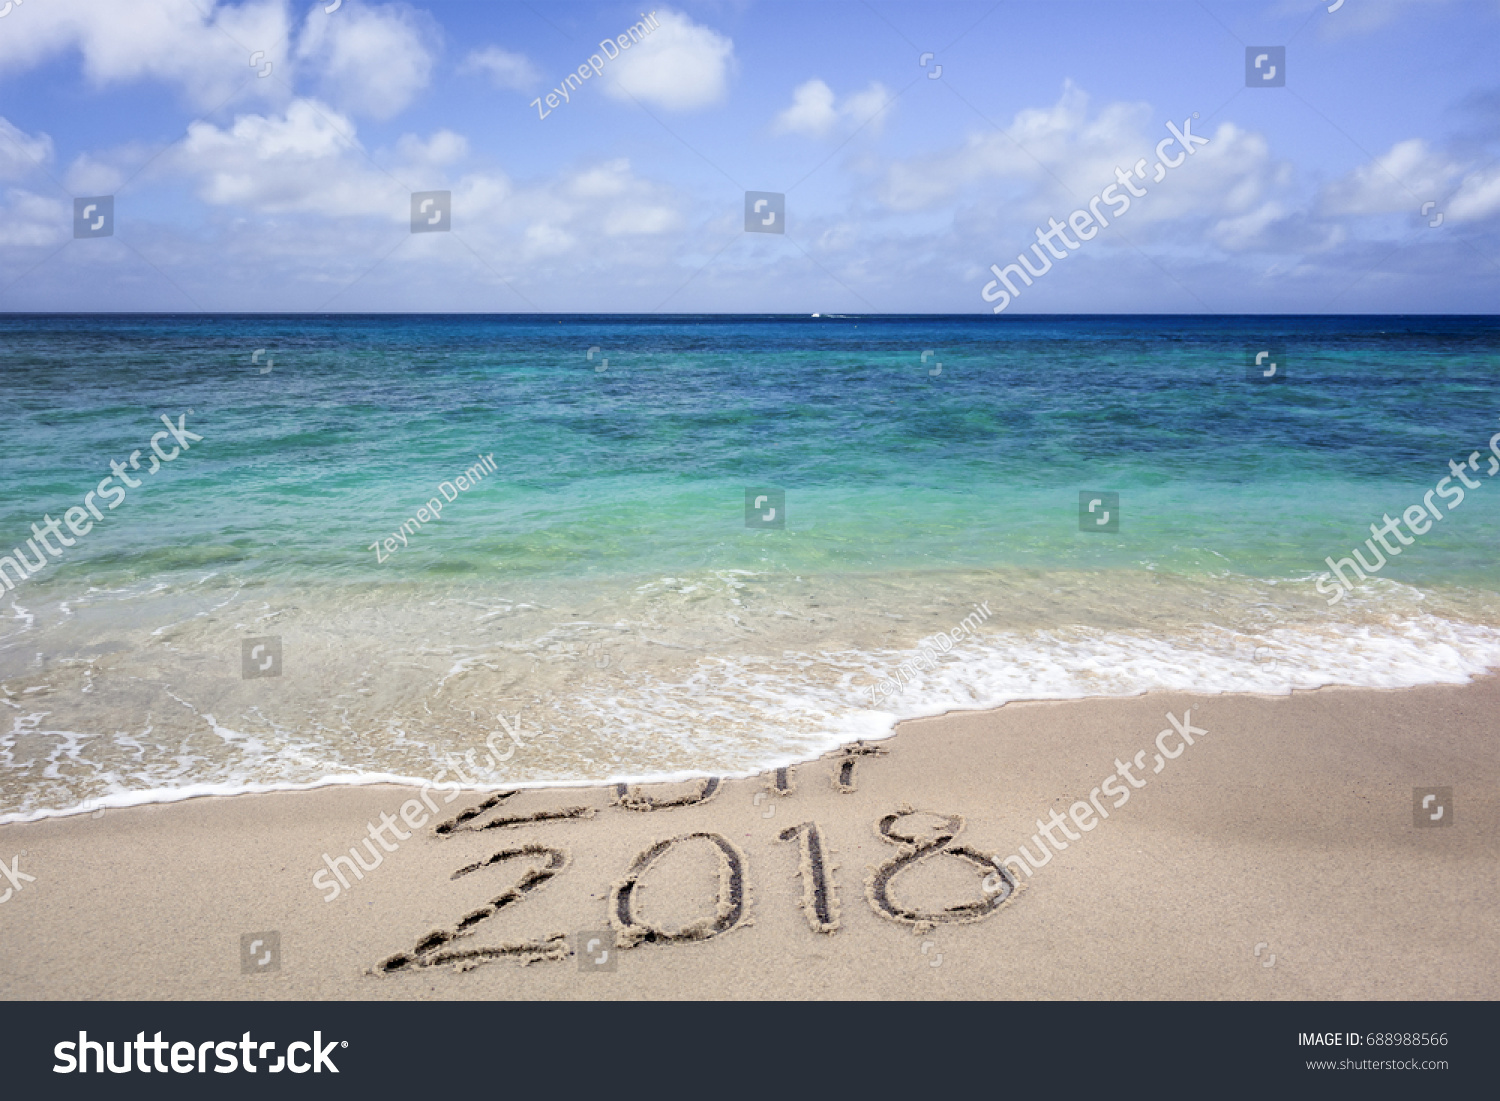 New Year 2018 Coming Concept Happy Stock Photo 688988566 ...